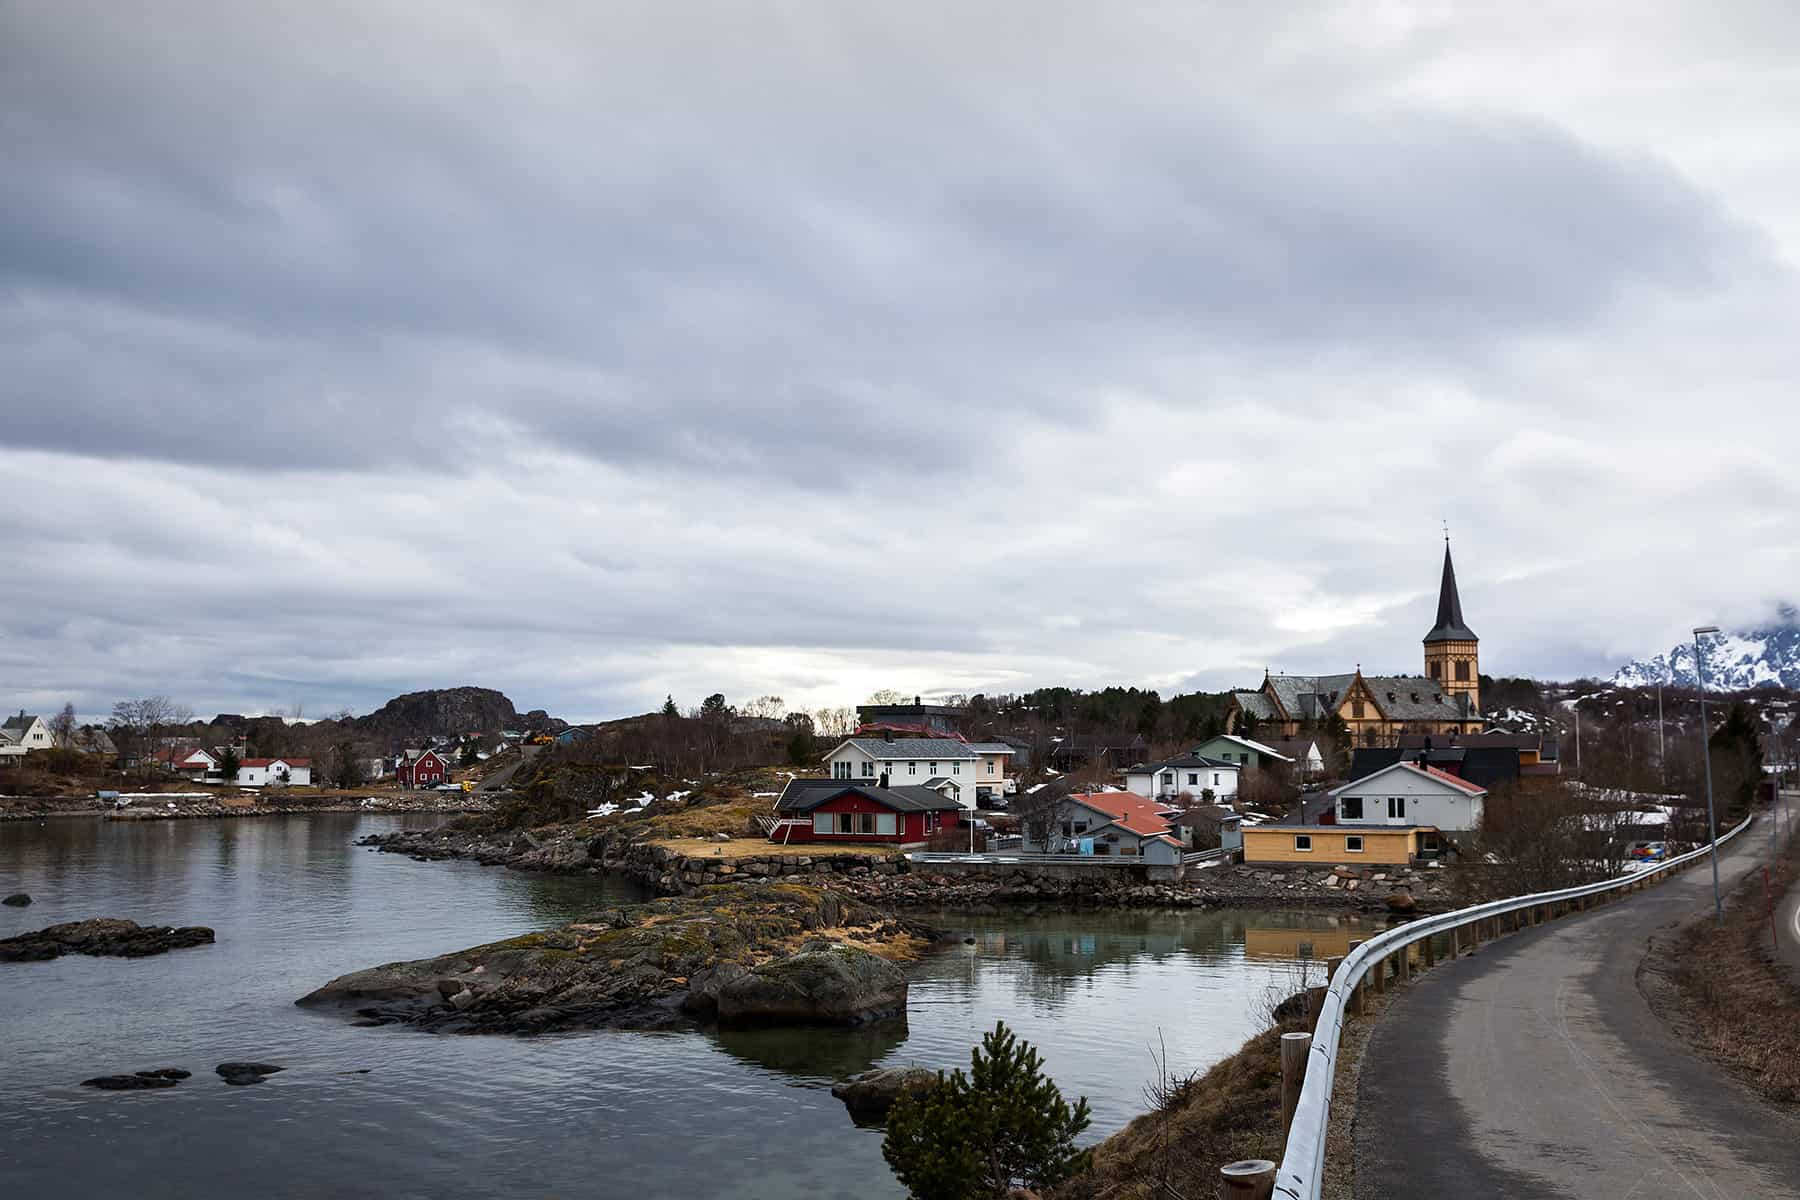 A view of the village of Kabelvåg.